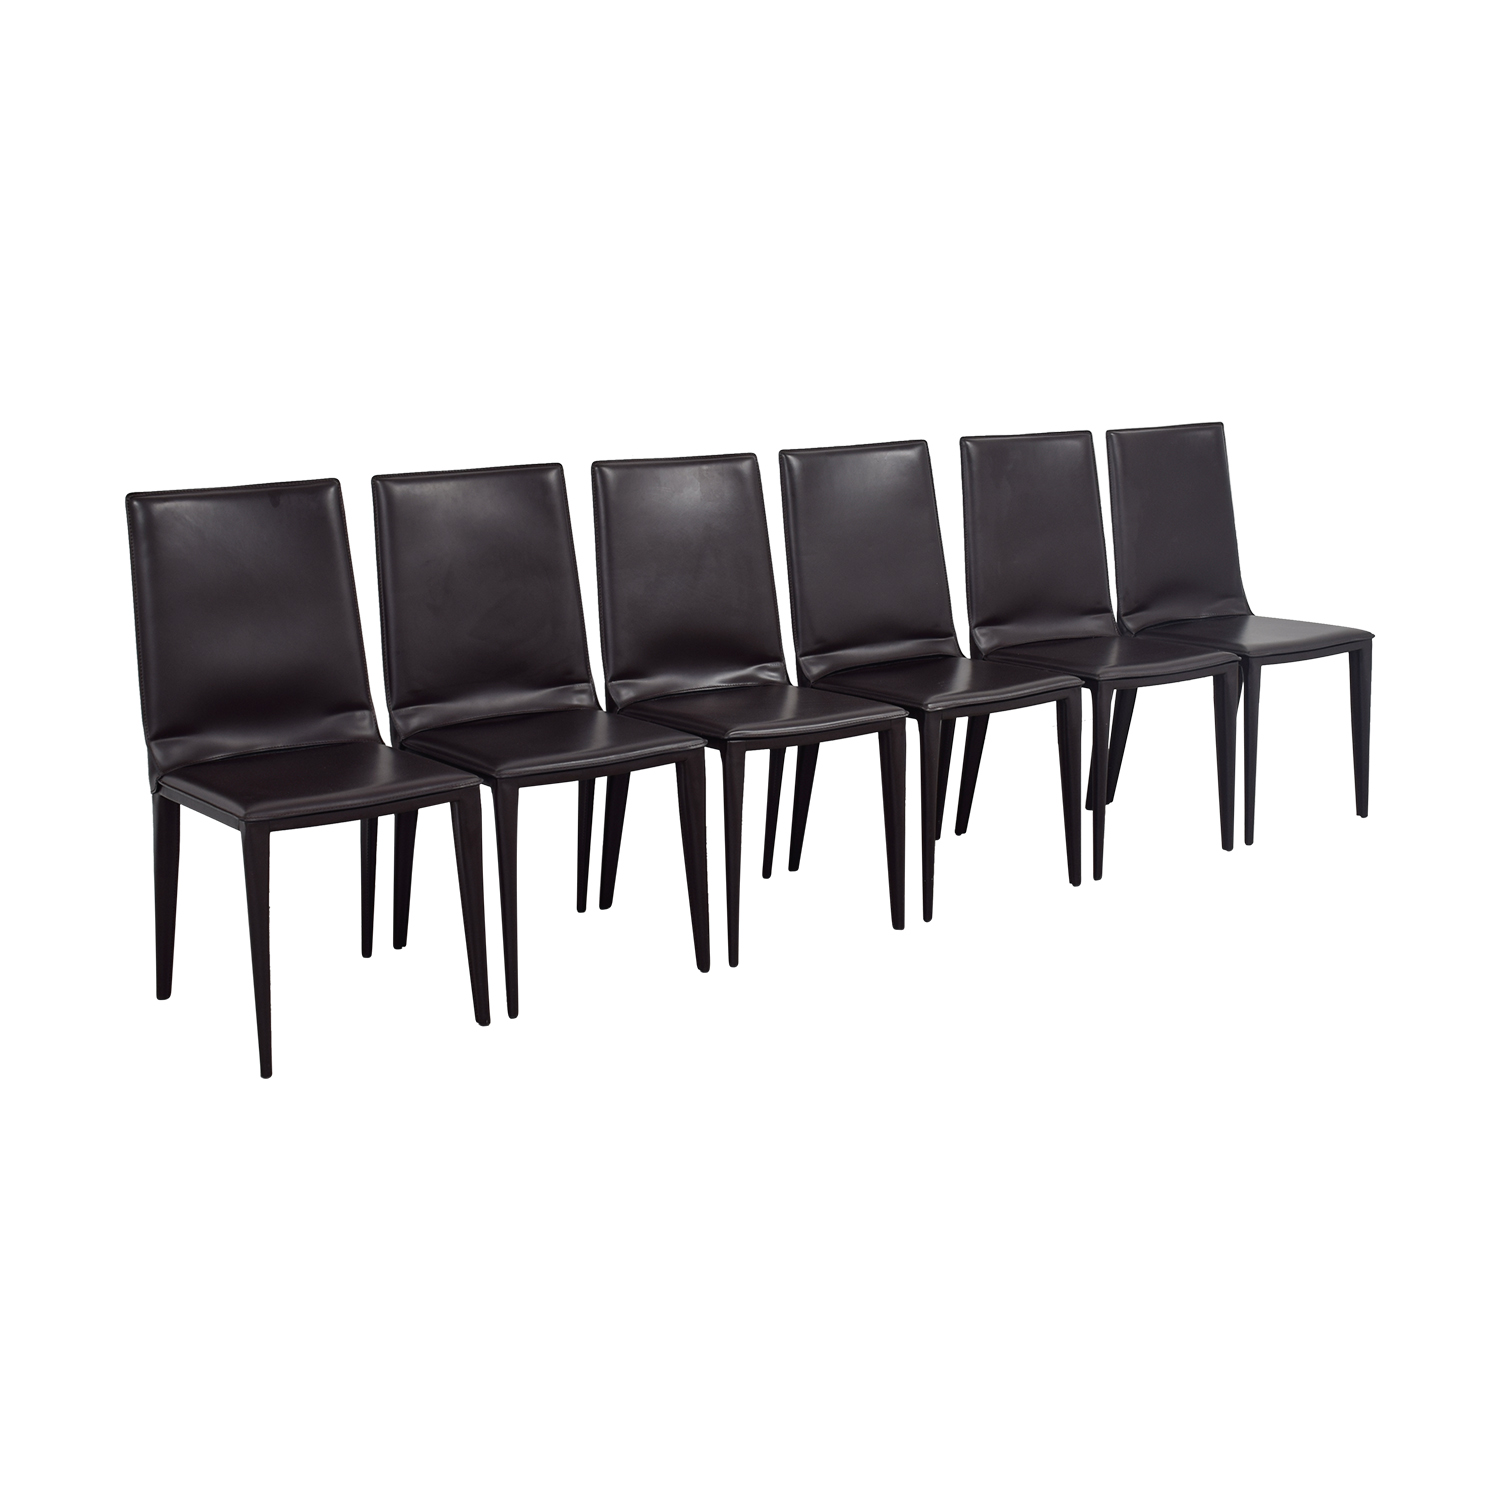 Frag Frag Brown Leather Dining Room Chairs Chairs